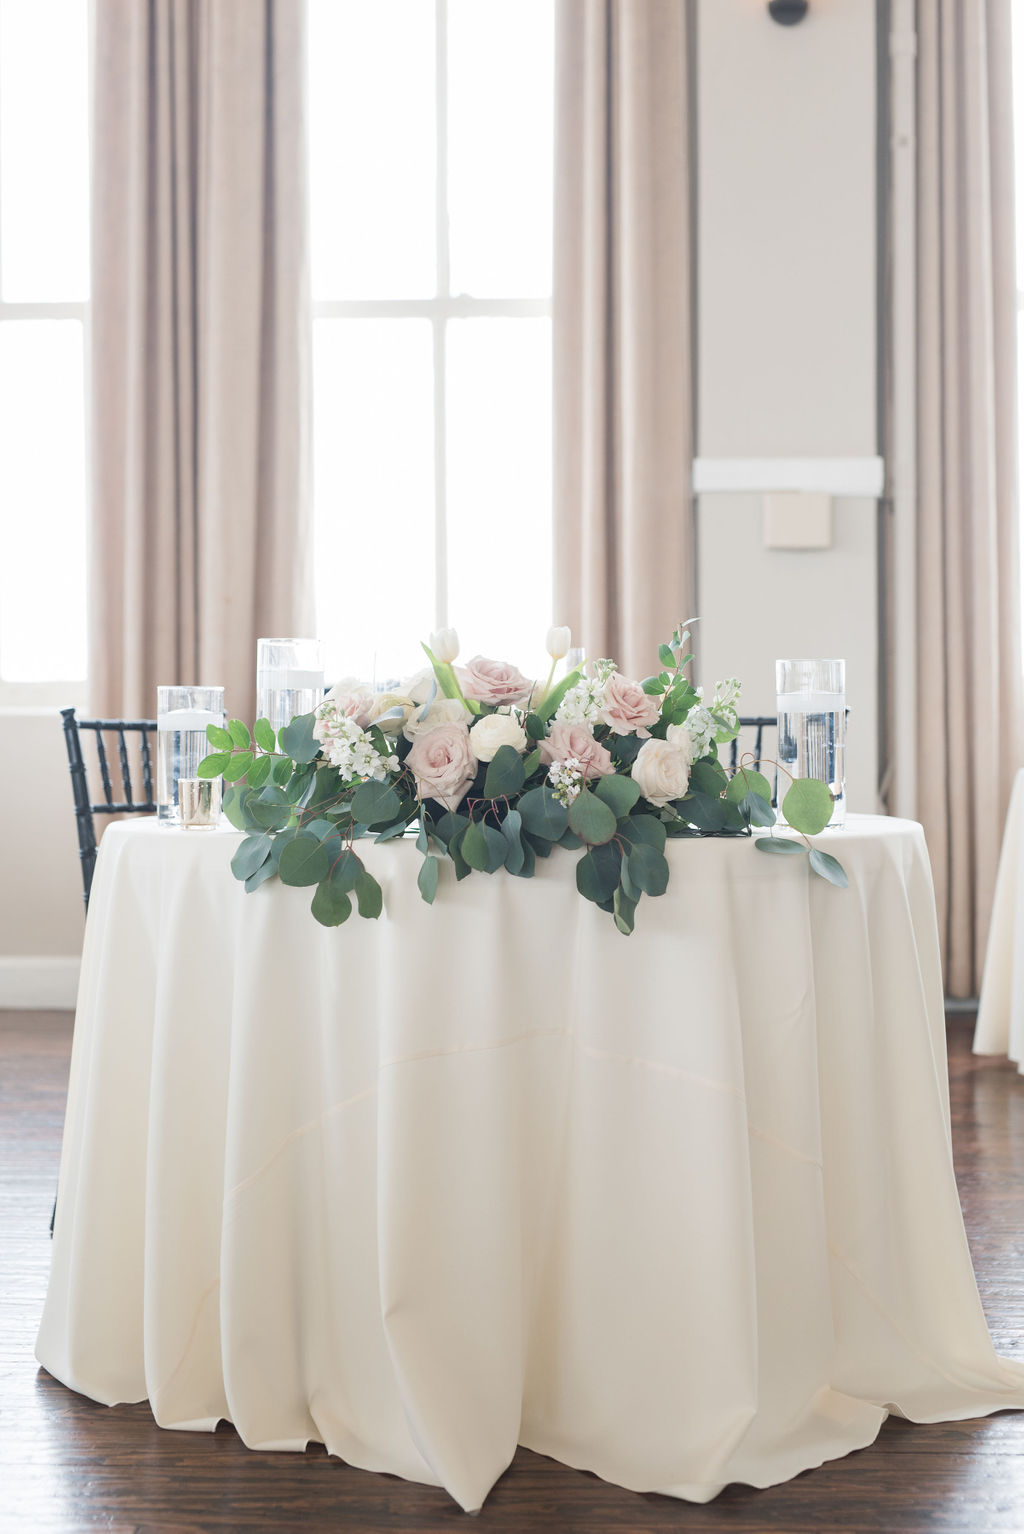 Wedding sweetheart table DFW wedding: Dusty Blue and Blush Wedding at The Room on Main featured on Alexa Kay Events!